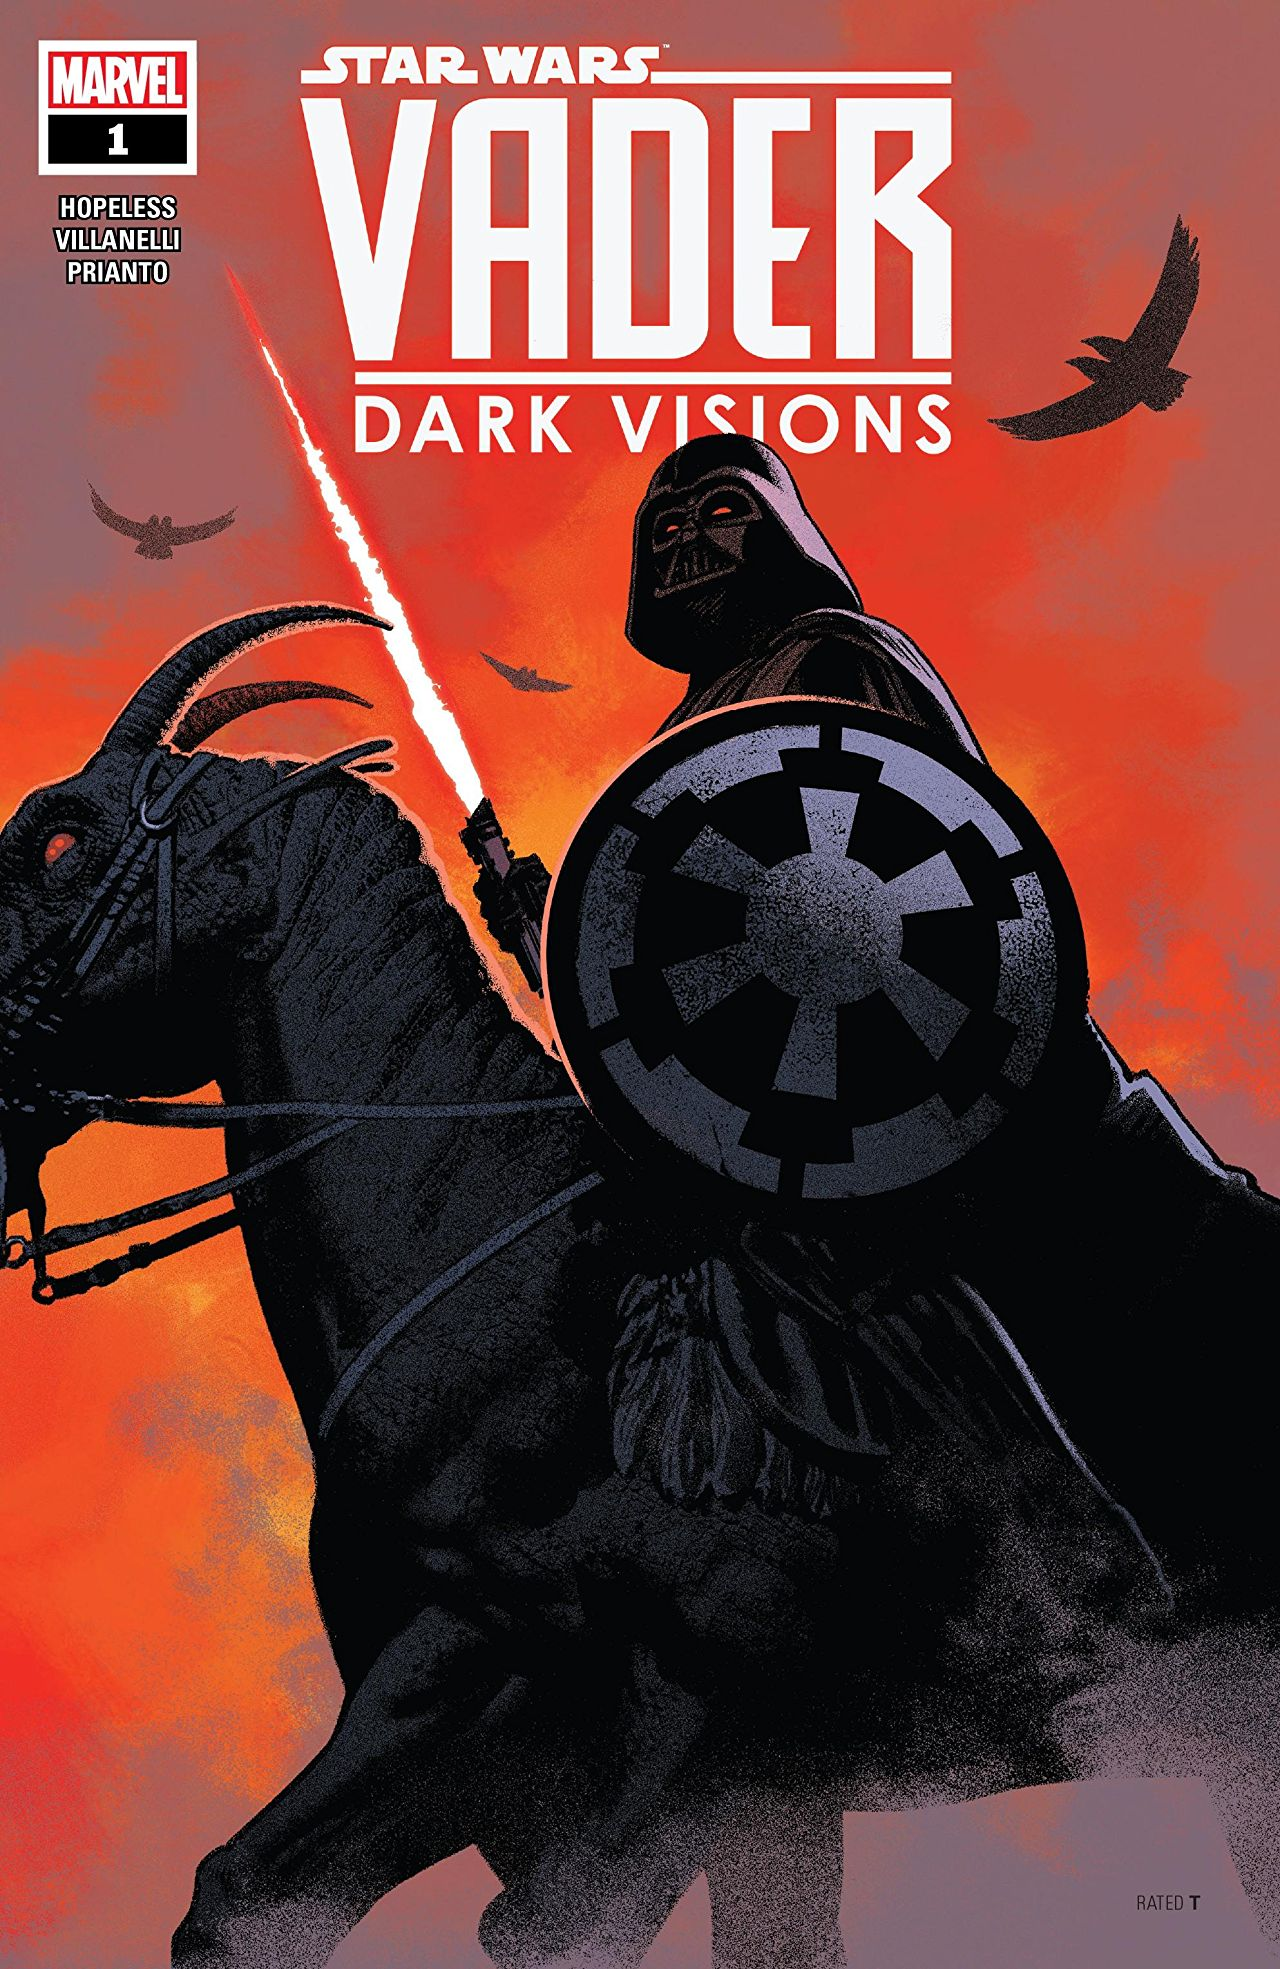 Marvel Preview: Star Wars: Vader - Dark Visions #1